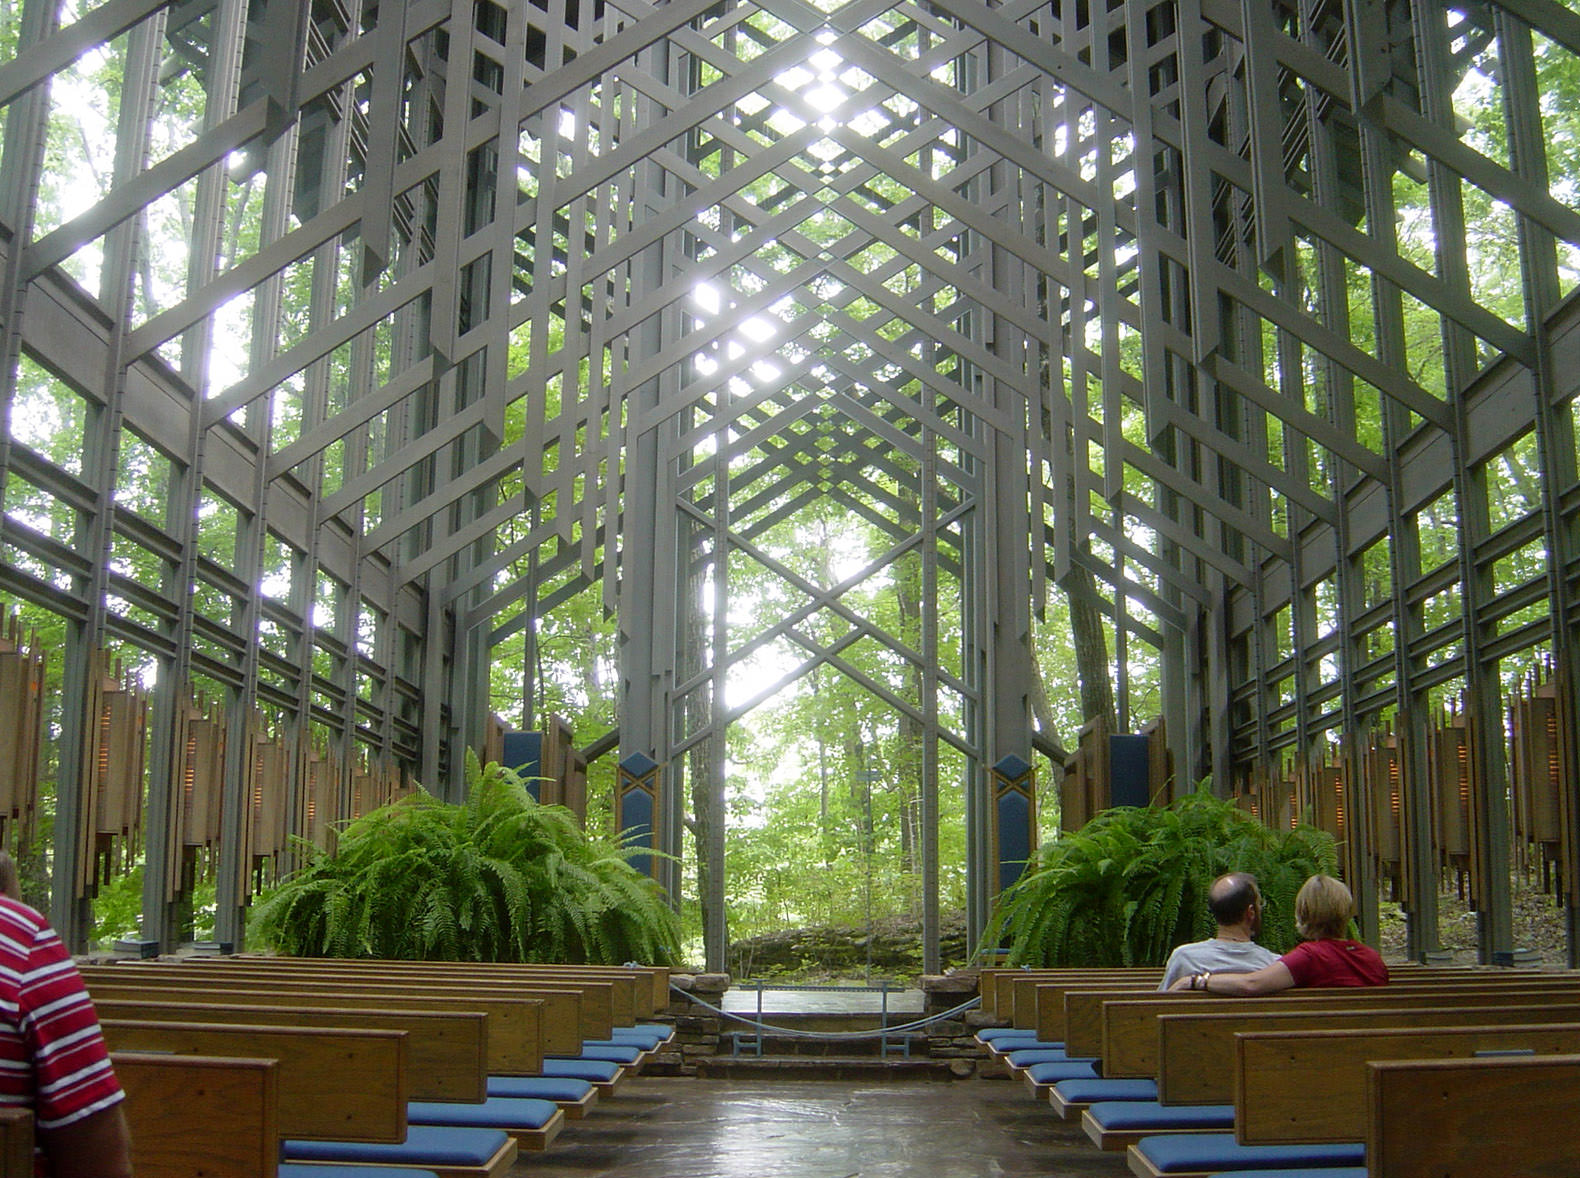 09 02 06 thorncrownchapel1